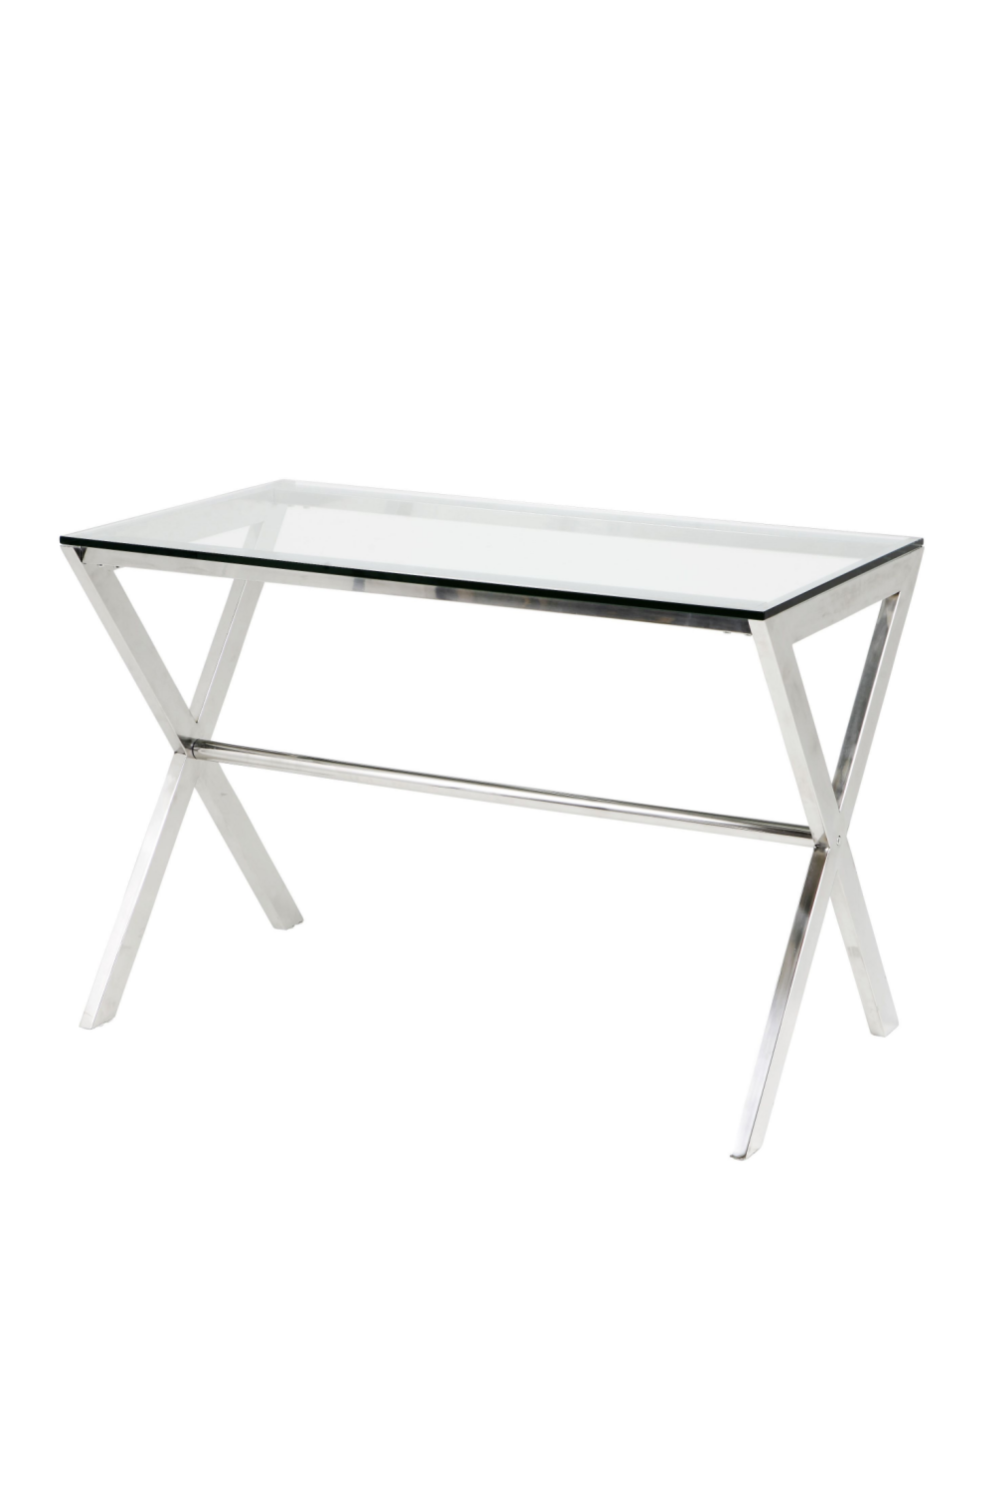 Glass Home Desk | Eichholtz Criss Cross | #1 Eichholtz Retailer